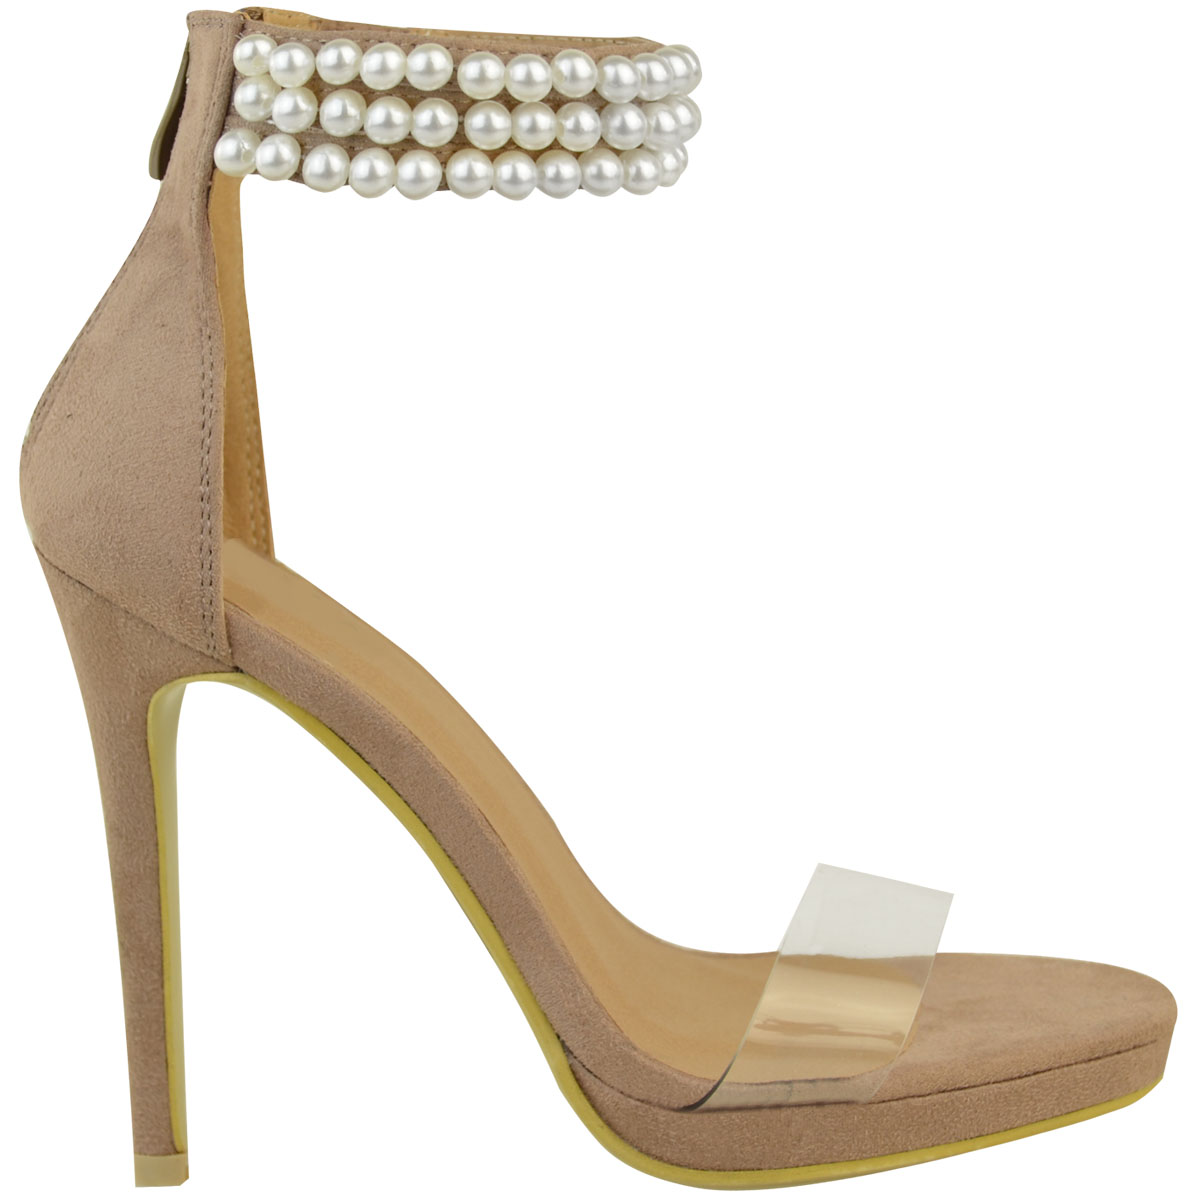 Womens Shoes Uk With Pearl